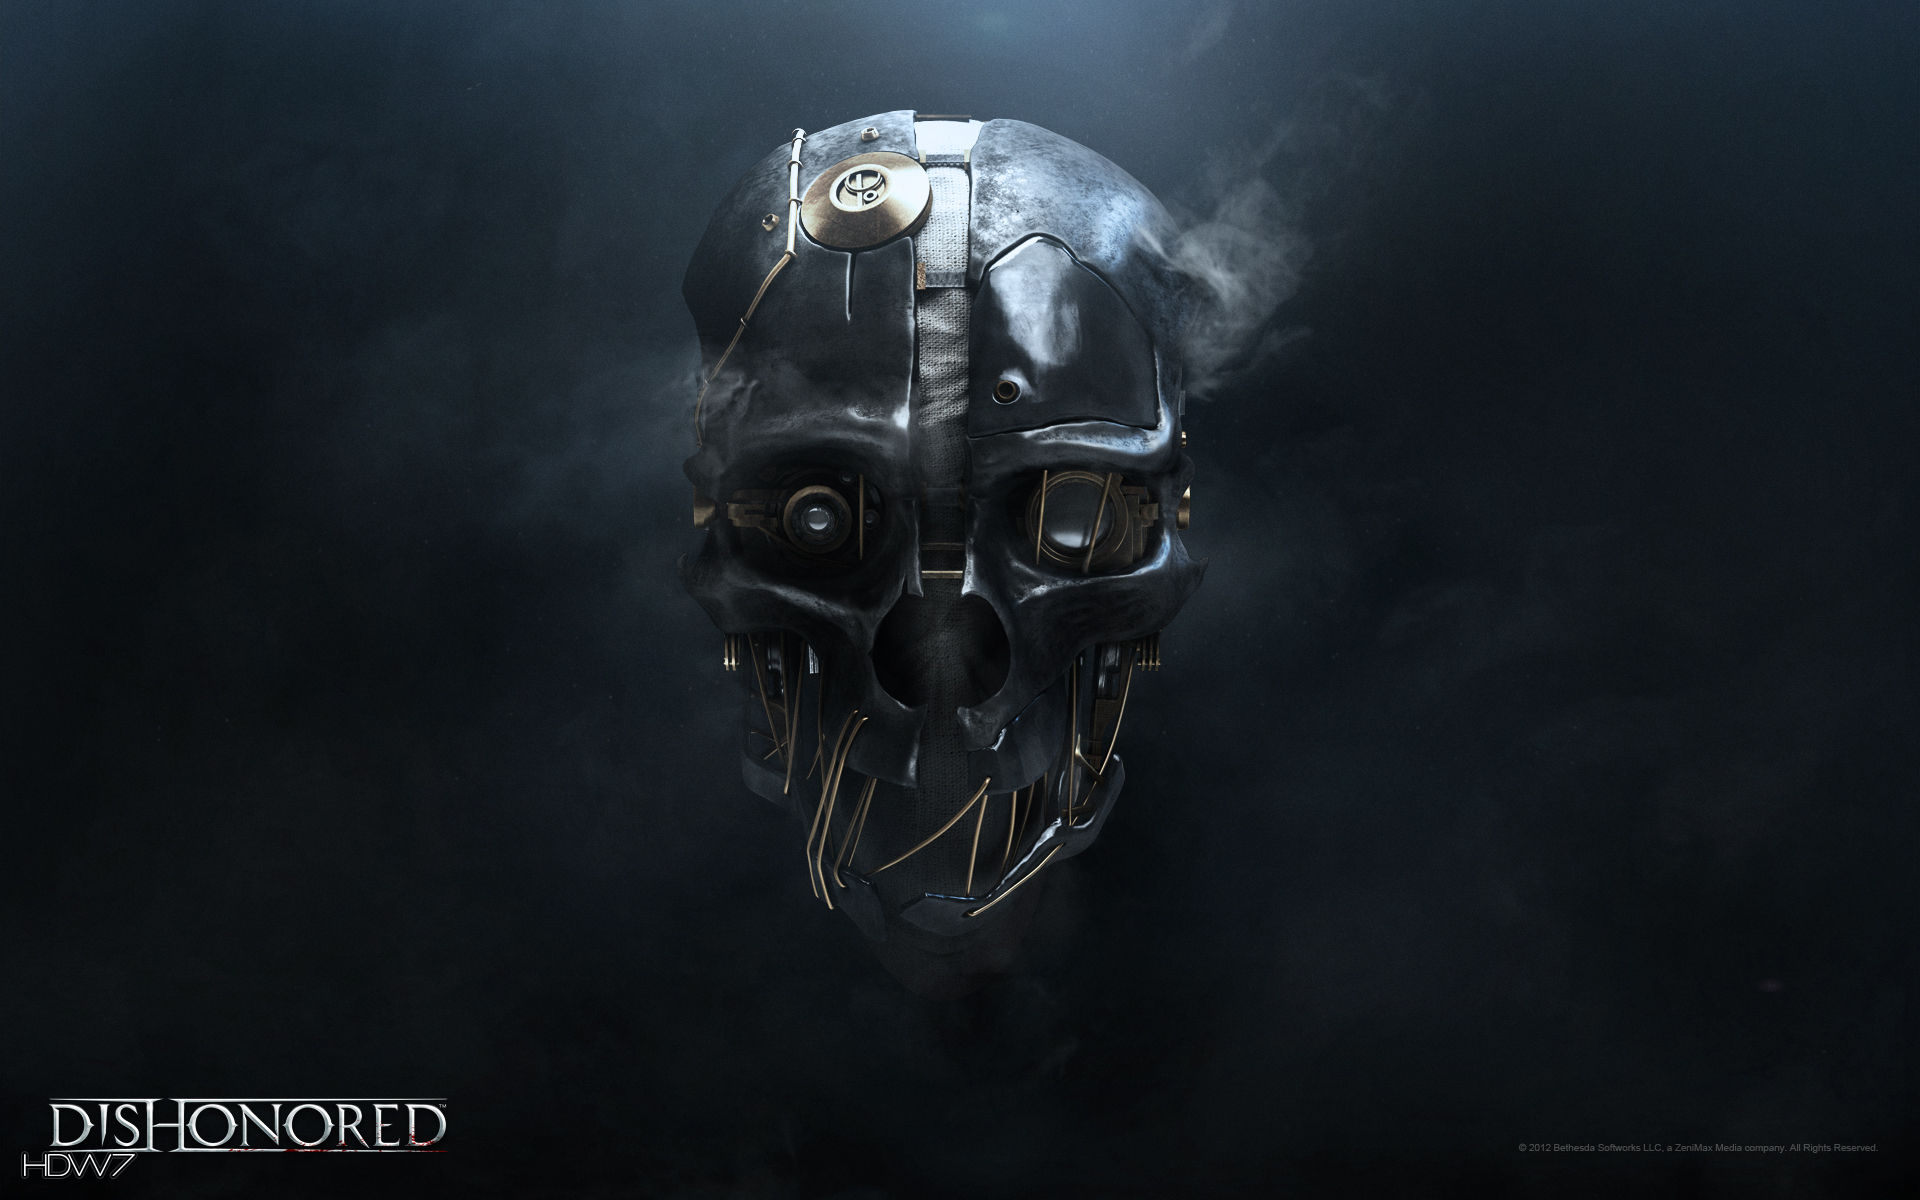 dishonored dishonored mask widescreen wallpaper